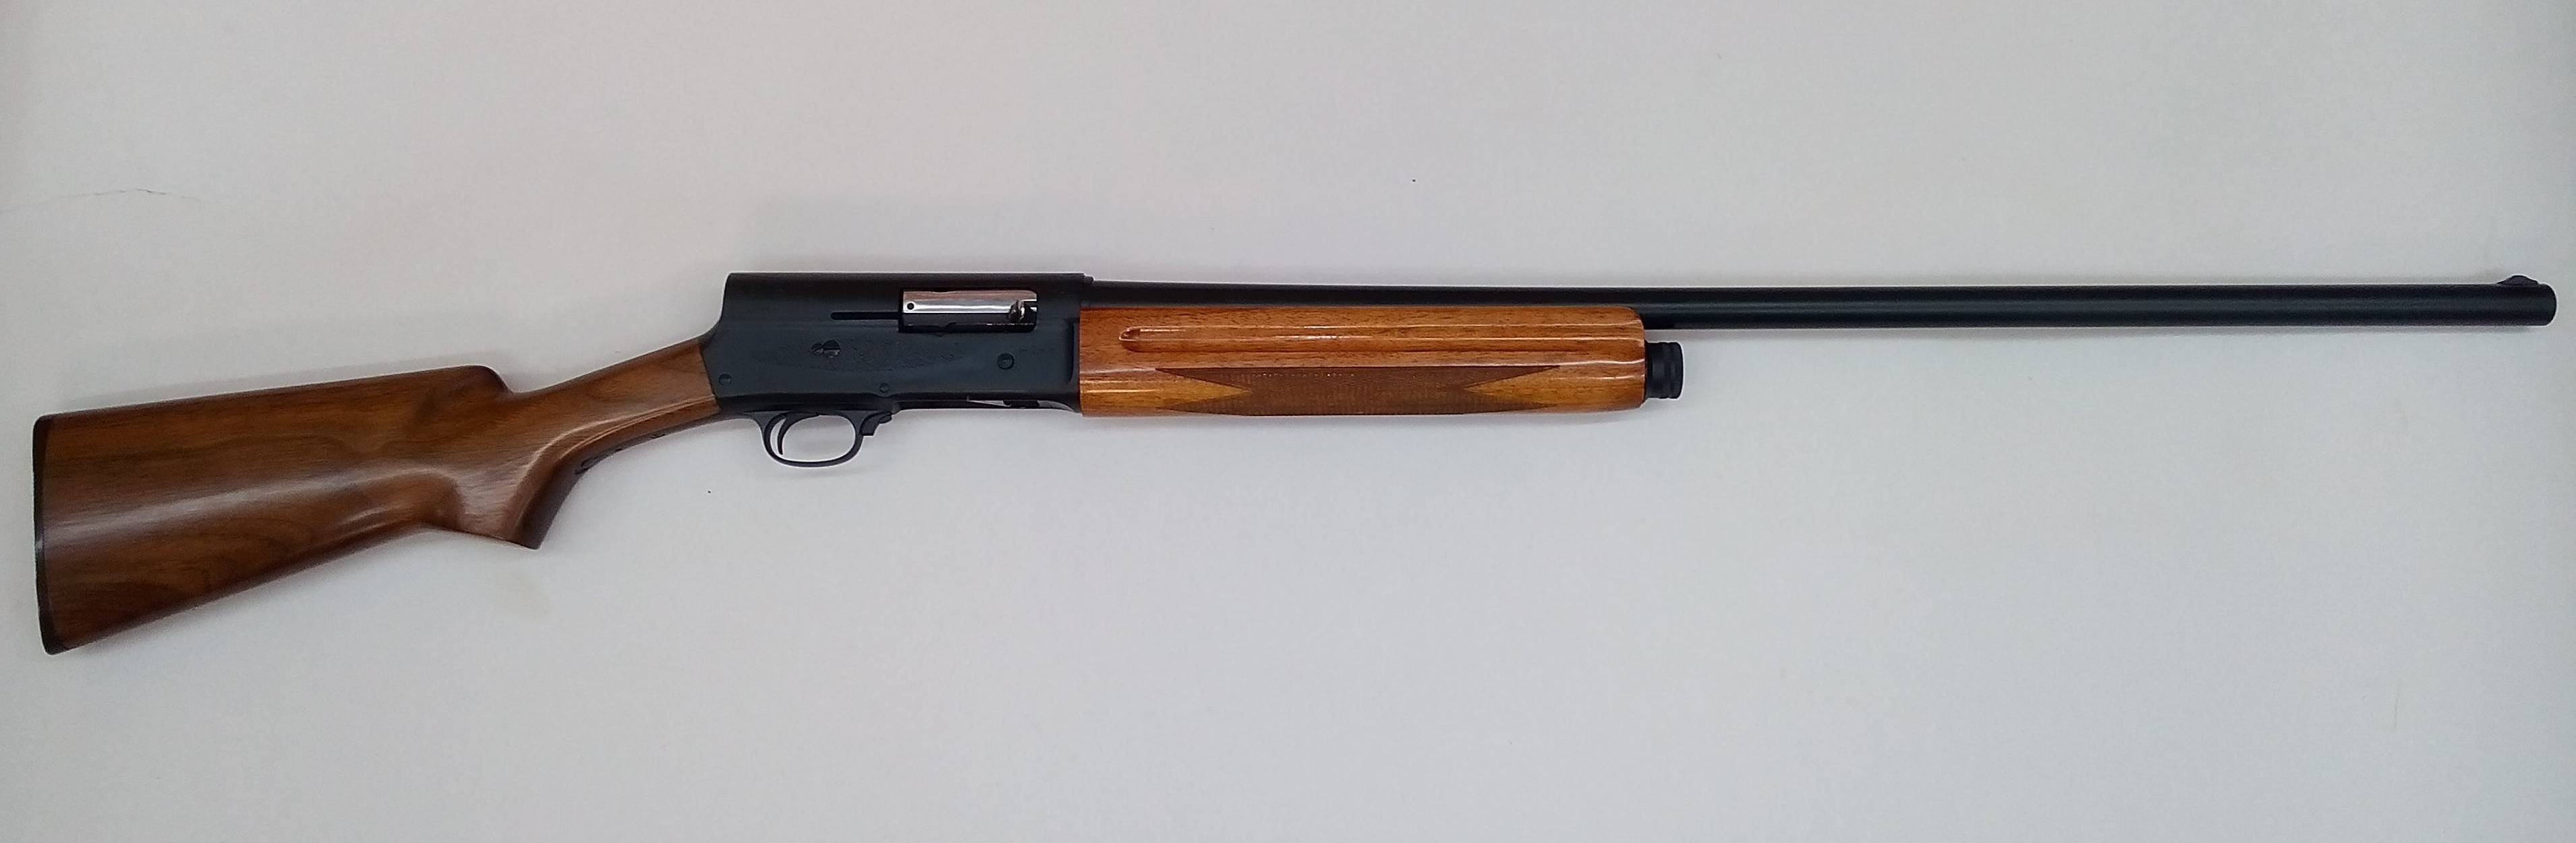 Browning A5  We  cerakoted metal with graphite black, and refinished stock and forend with high gloss polyurethane.